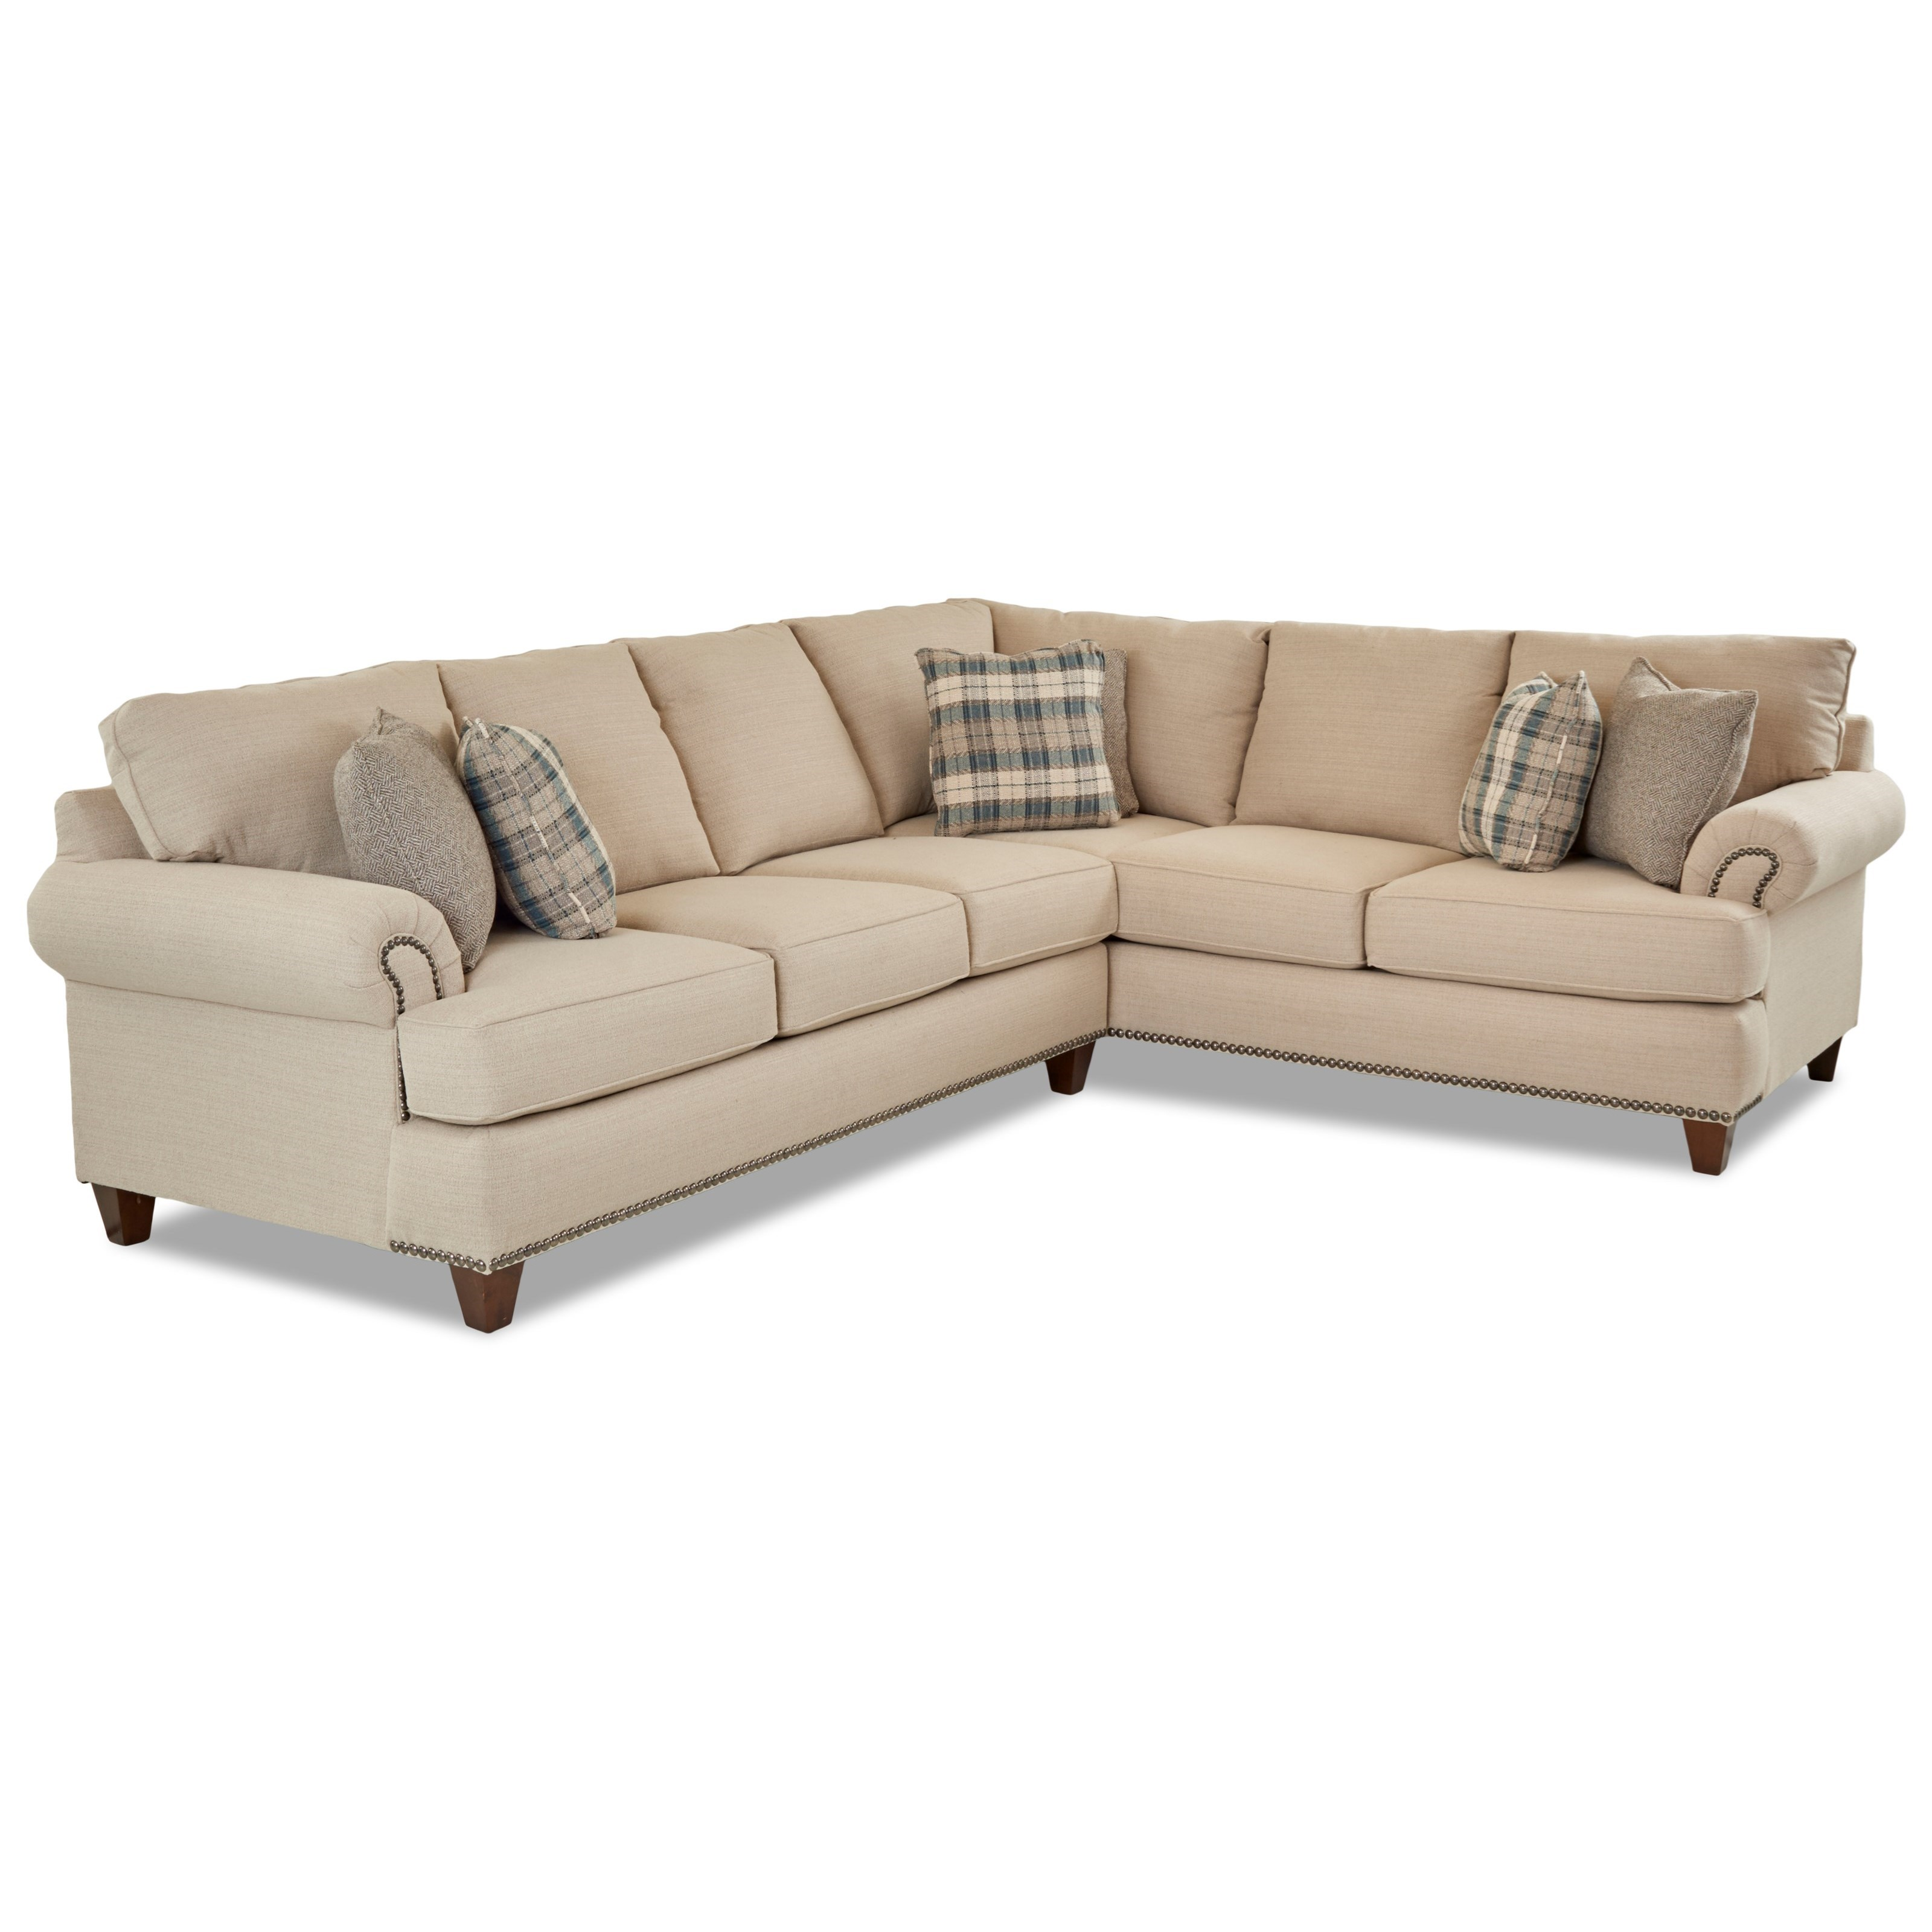 Two Piece Sectional Sofa with LAF Sofa